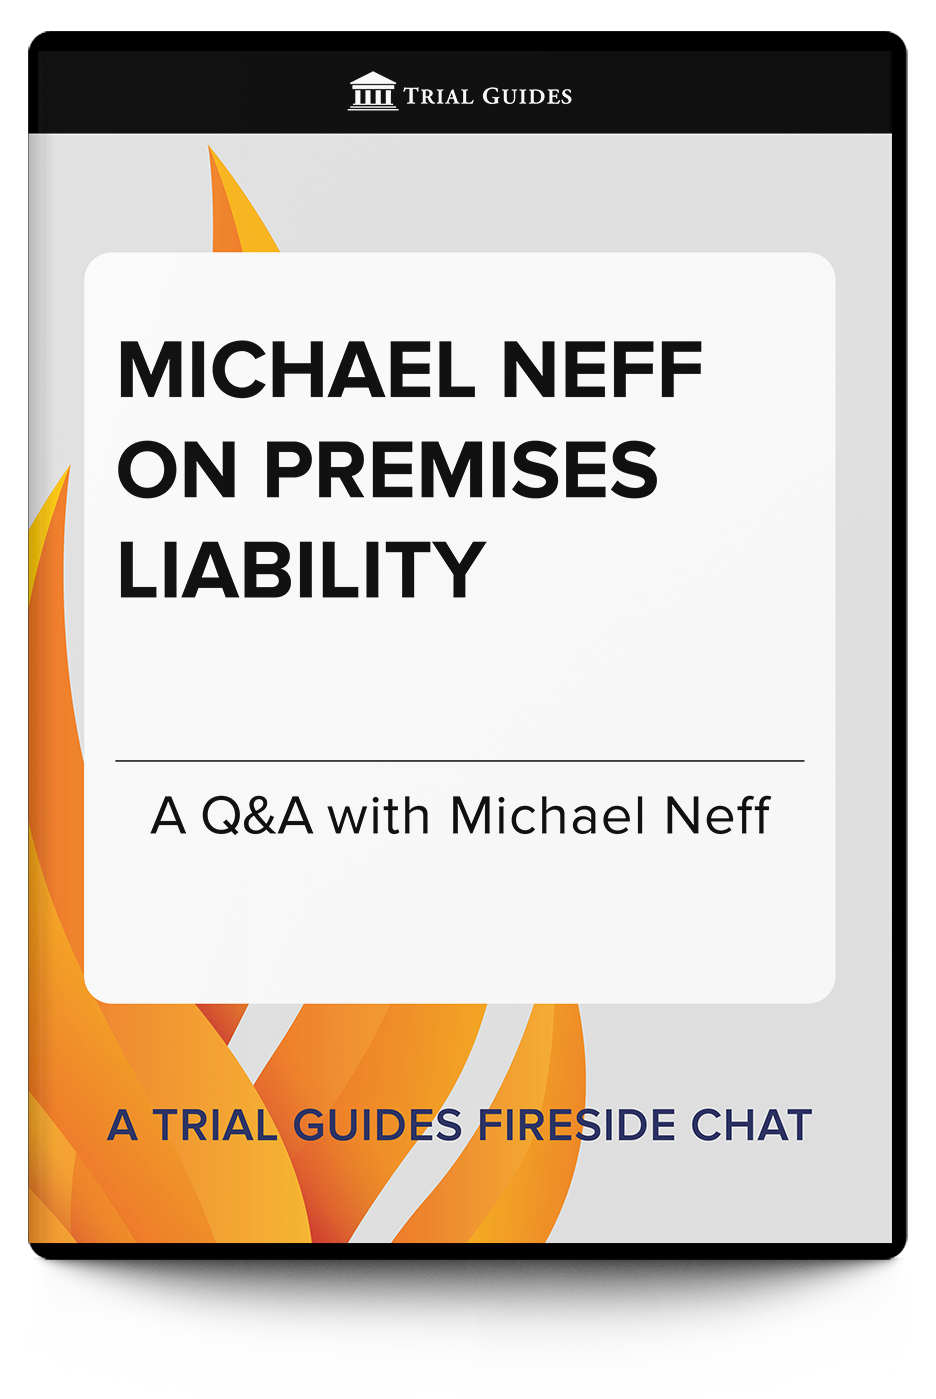 Michael Neff on Premises Liability